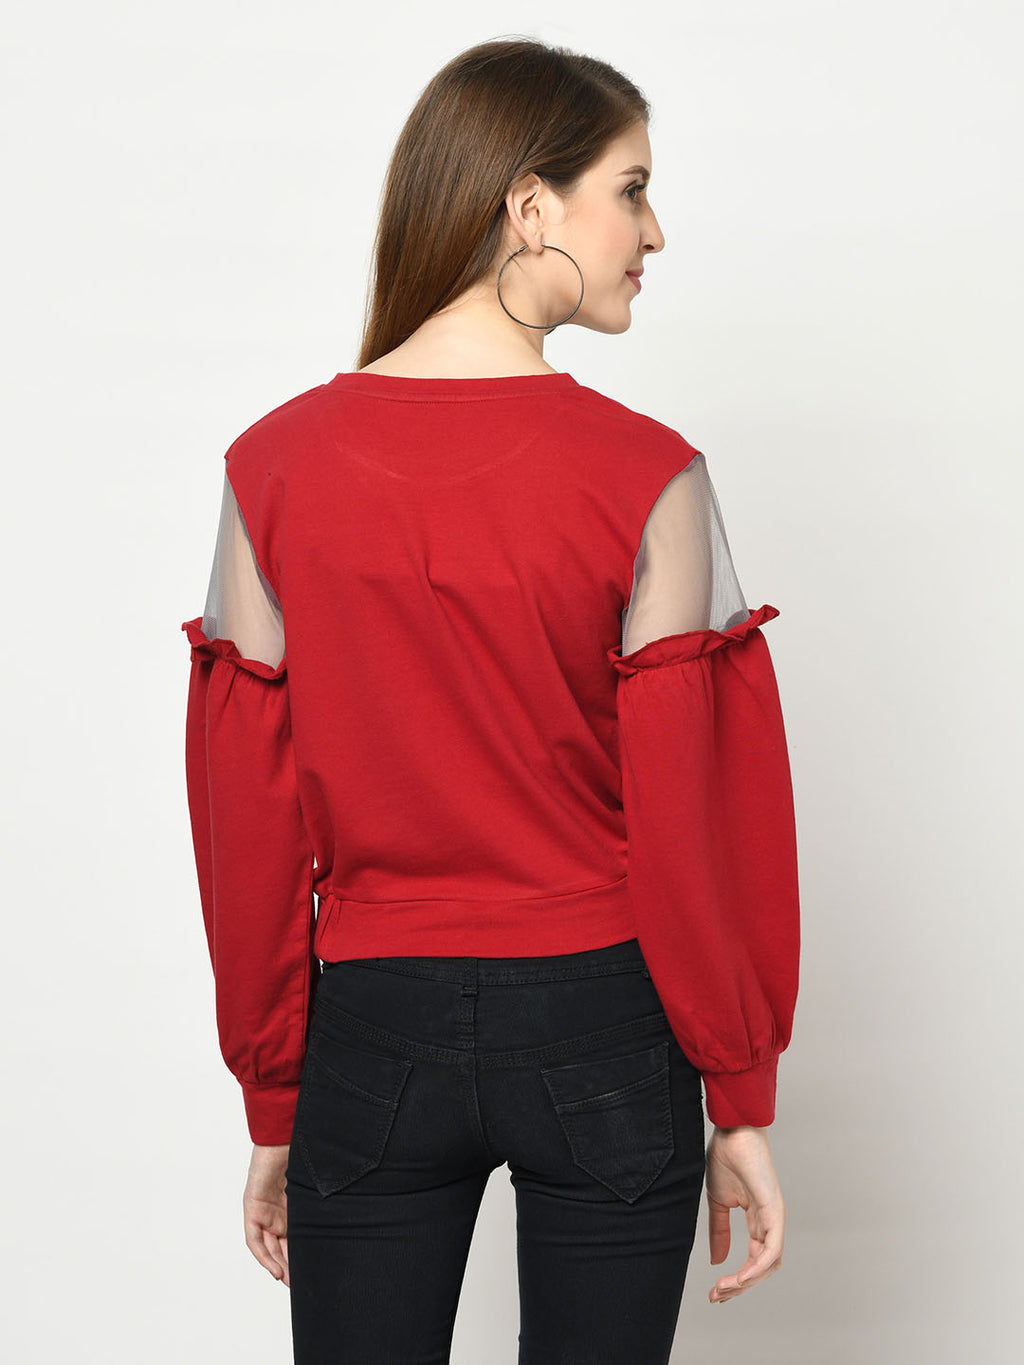 Red Sweatshirt With Black Net - Avsoy